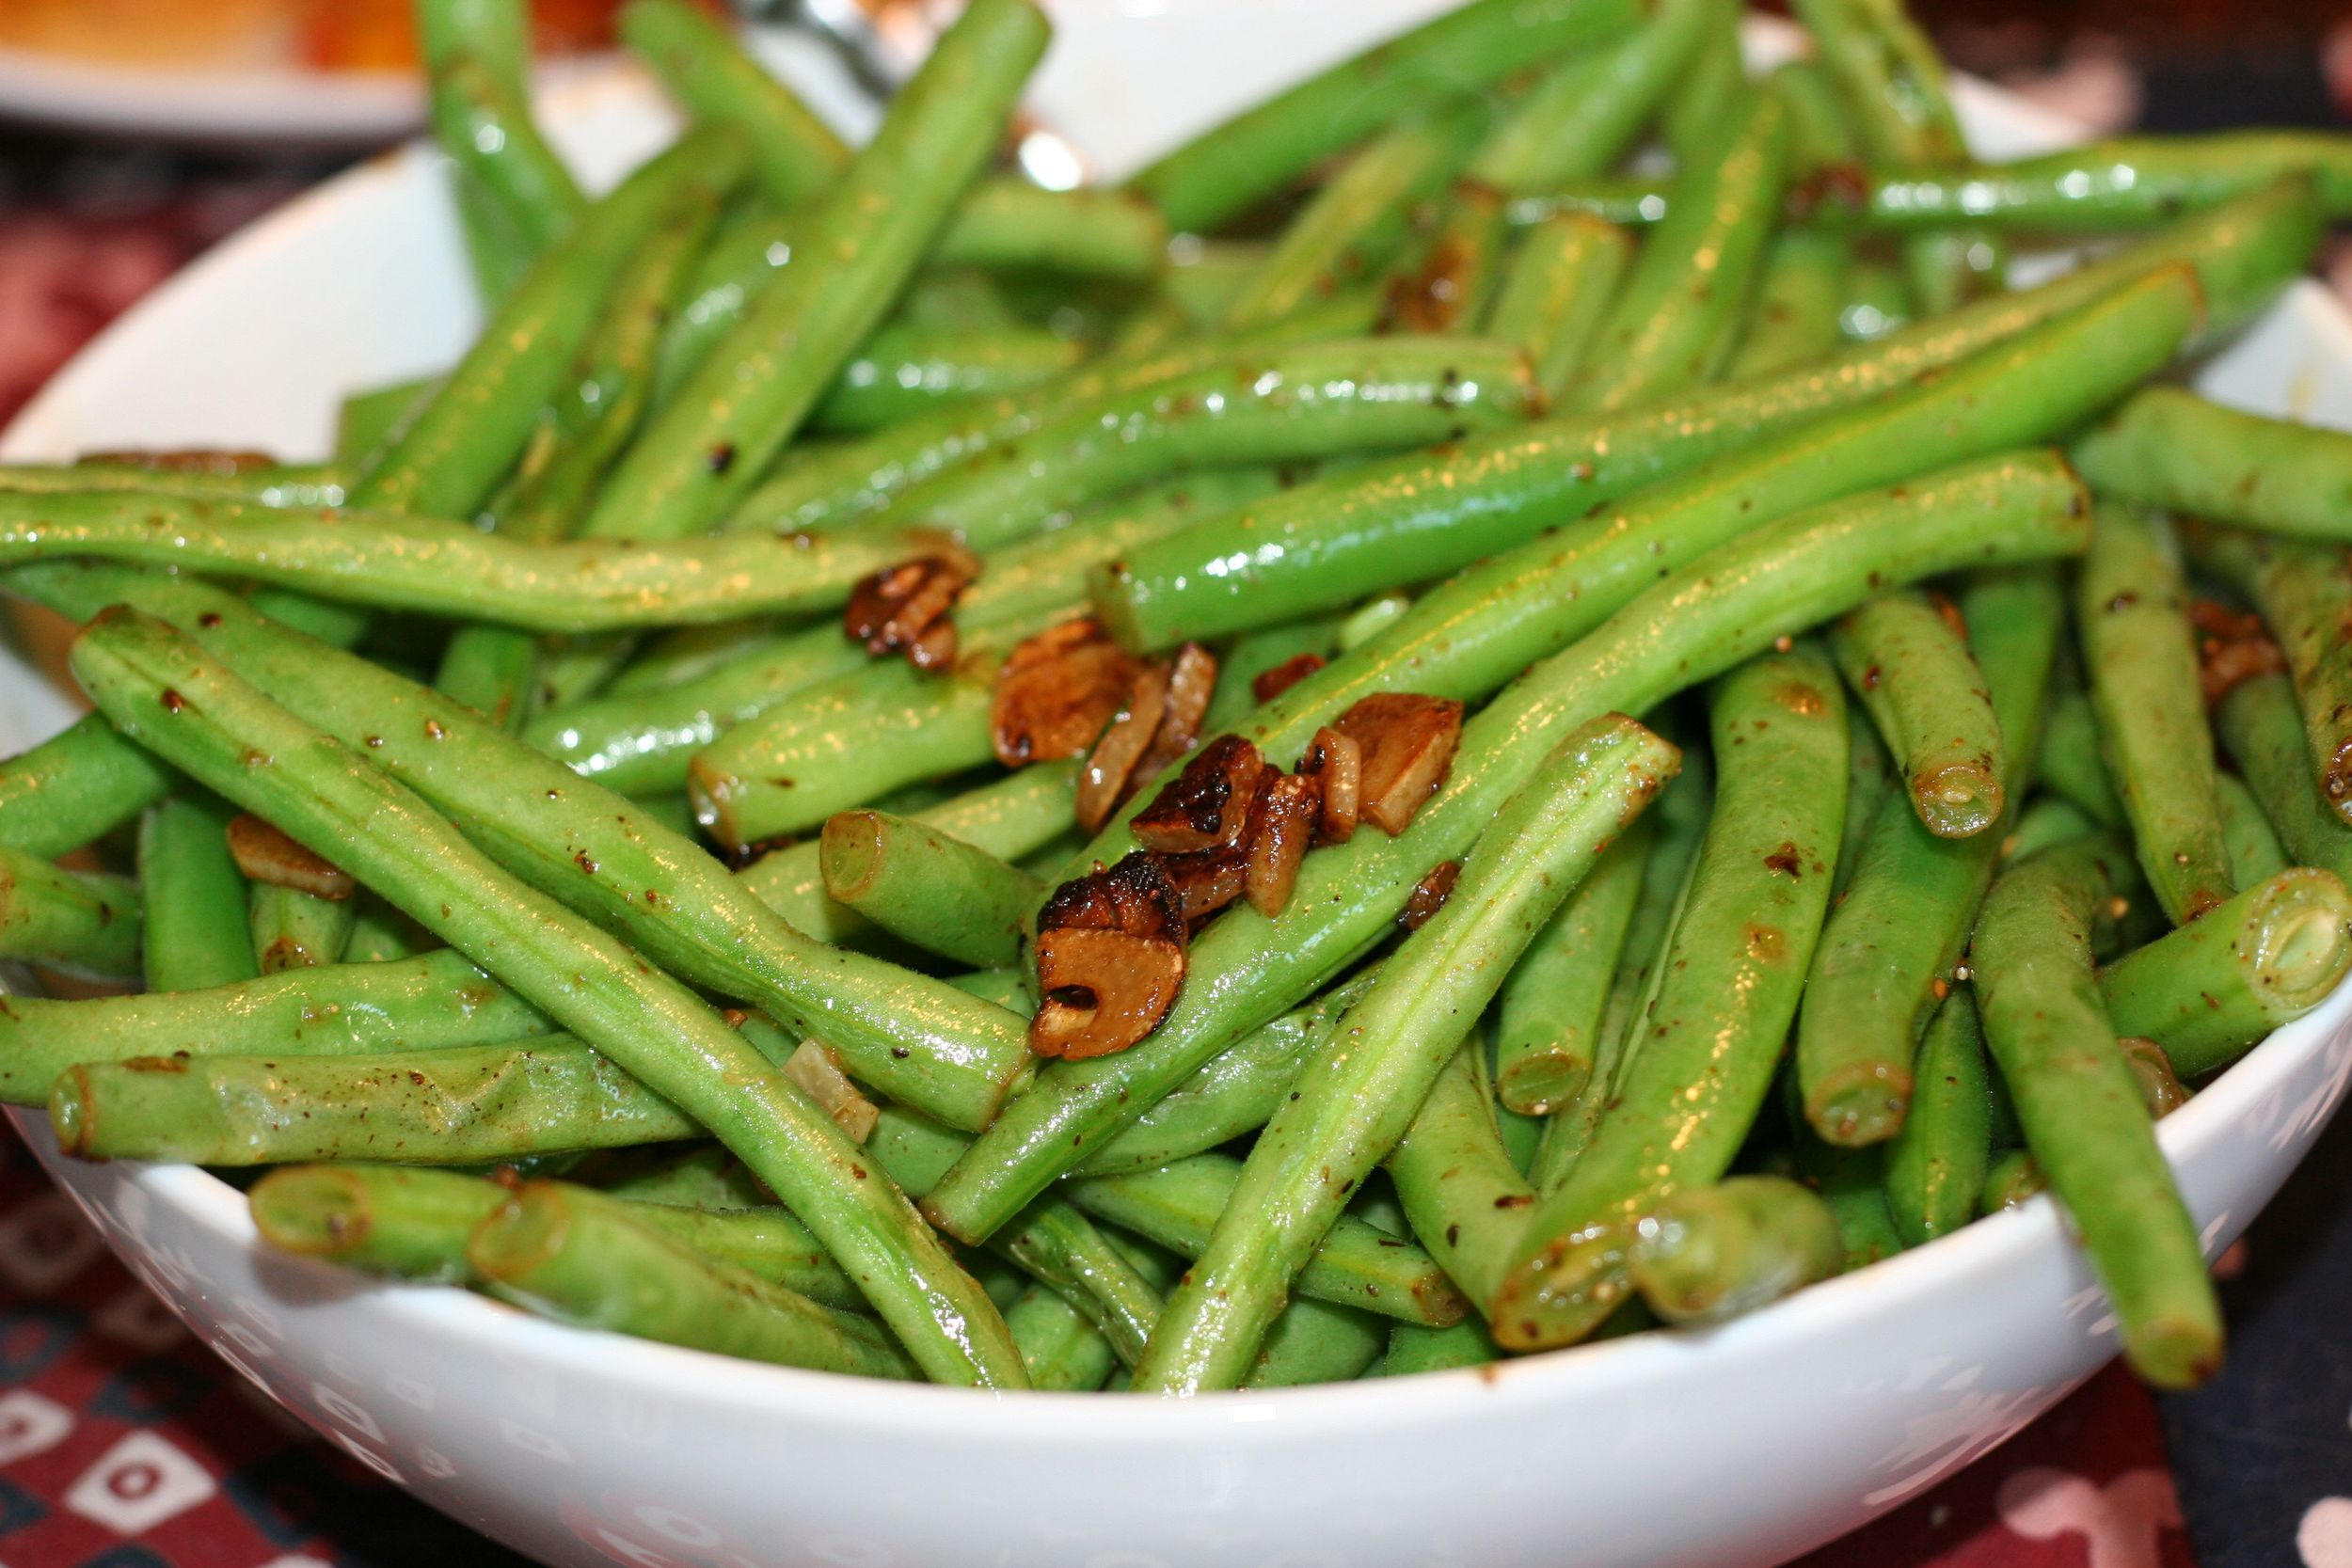 greenbeansgarlic